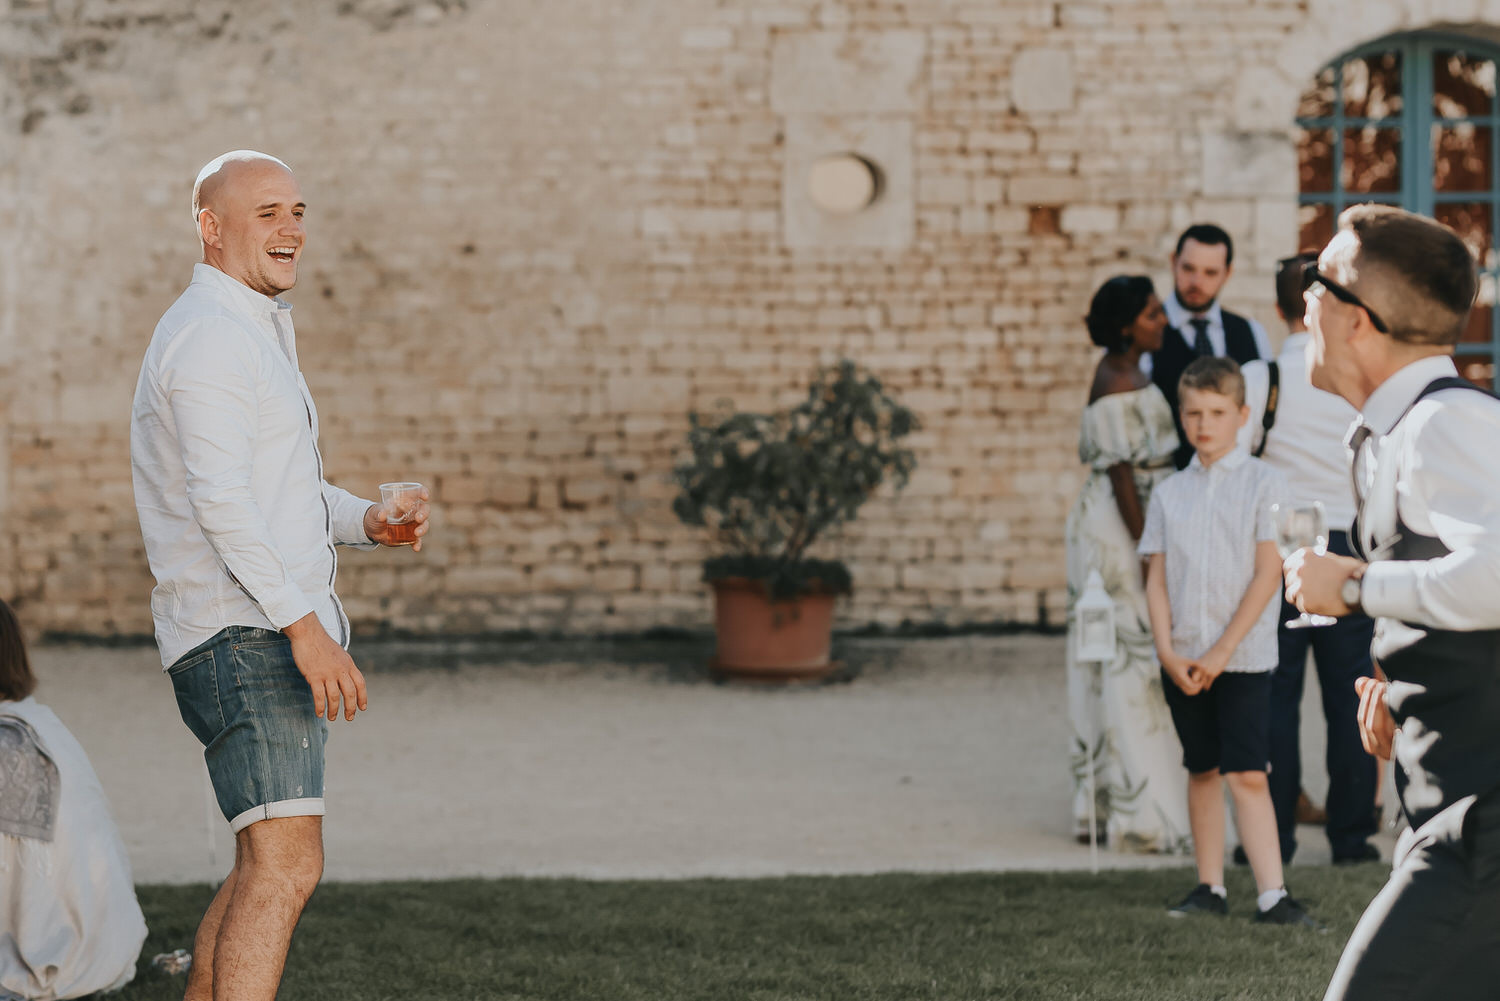 Image of wedding photography taken by a Nantes wedding photographer in France photographing a French wedding at a chateau in France.